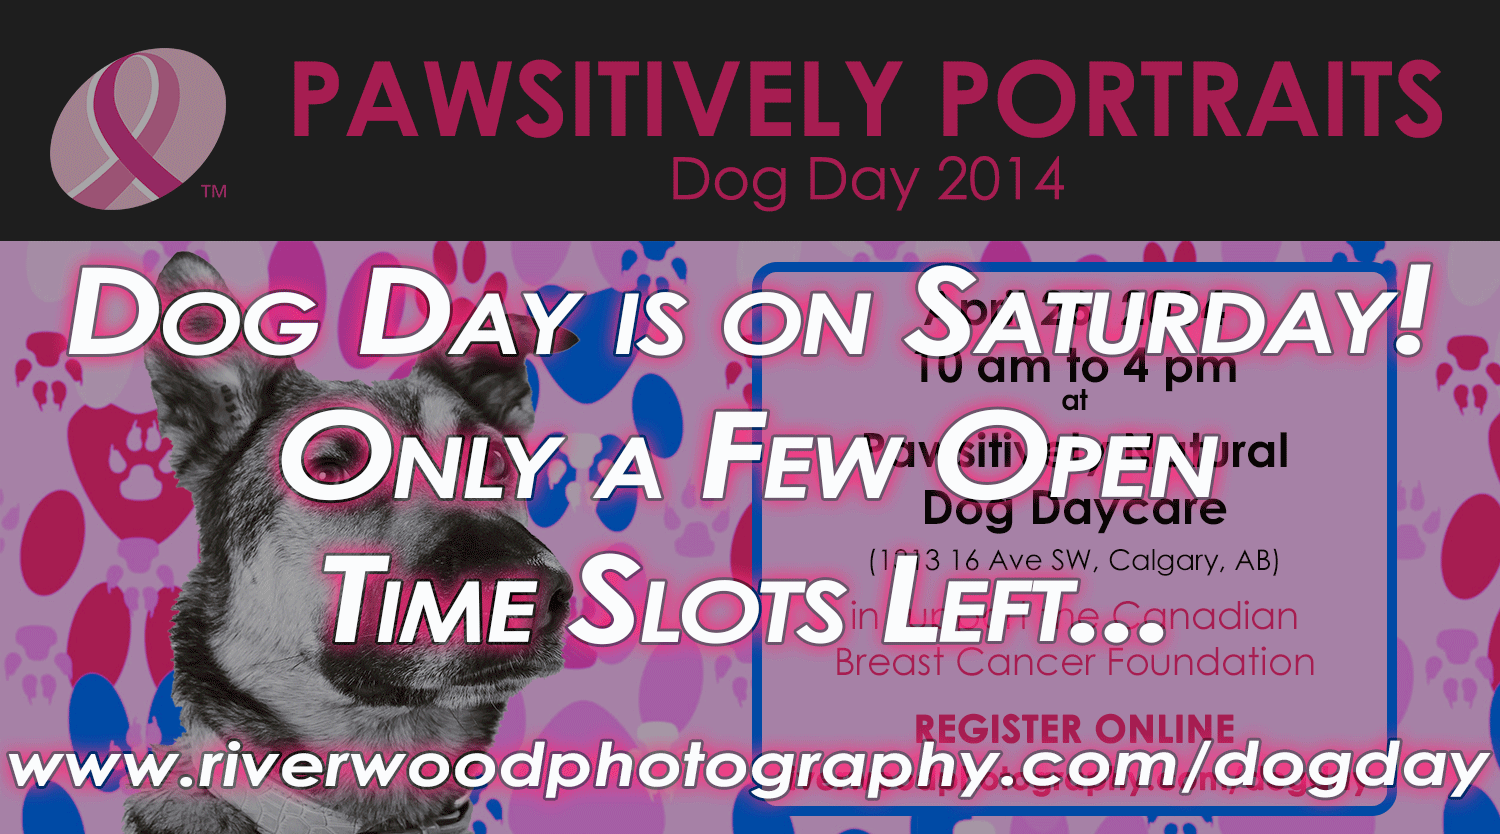 Only a few Open Times Left for Dog Day 2014